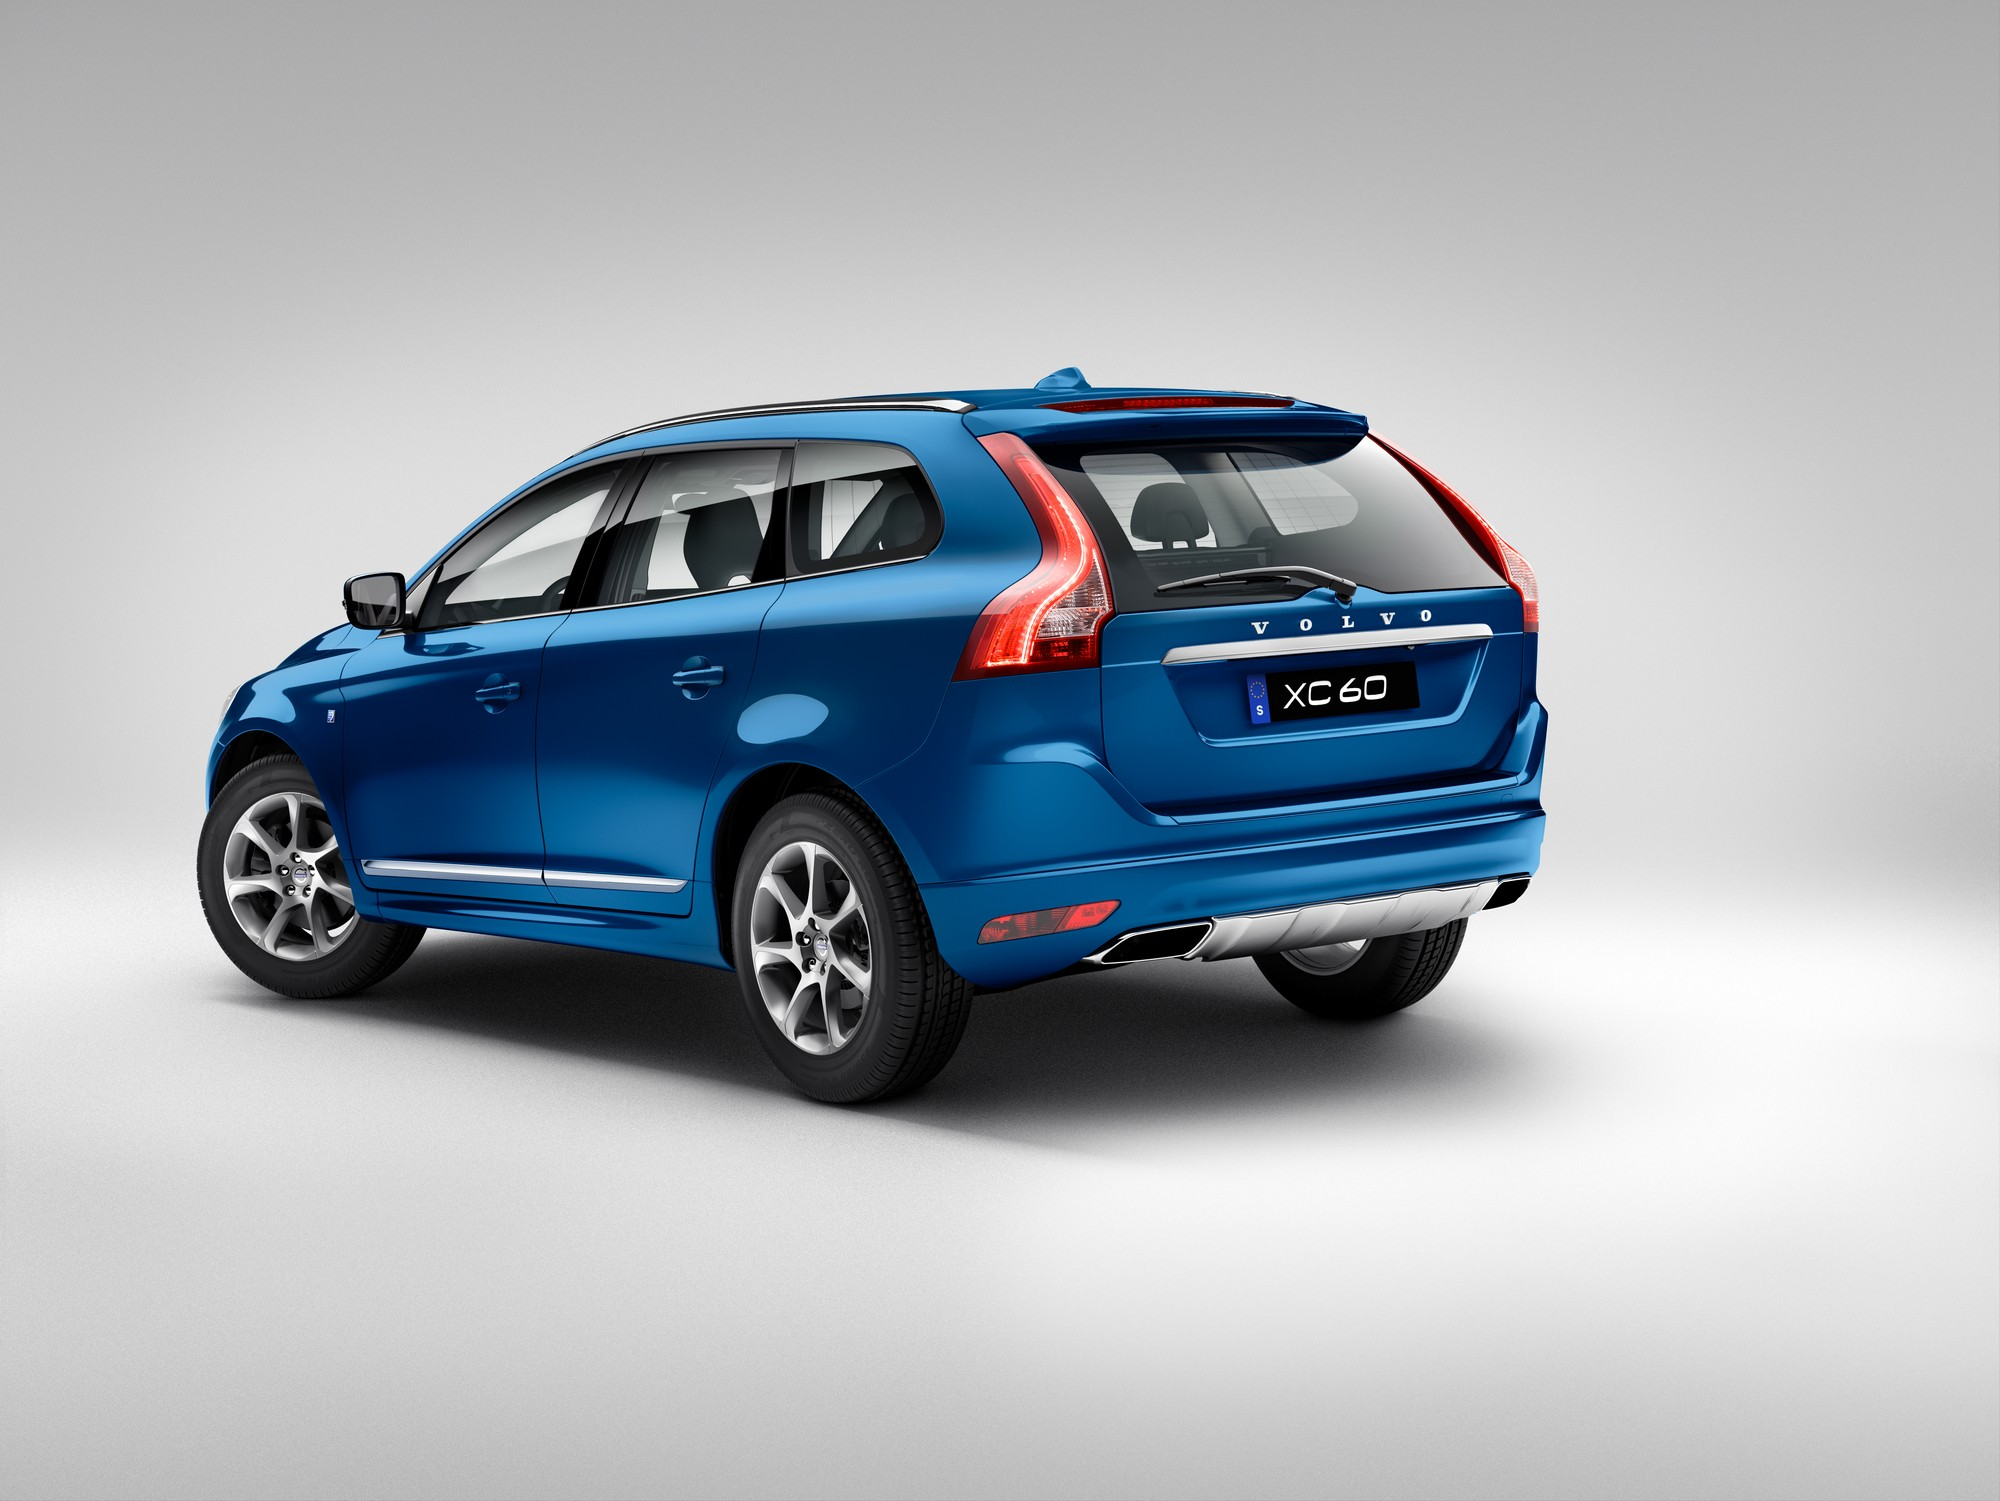 2015 volvo xc60 ocean race limited edition hd pictures. Black Bedroom Furniture Sets. Home Design Ideas